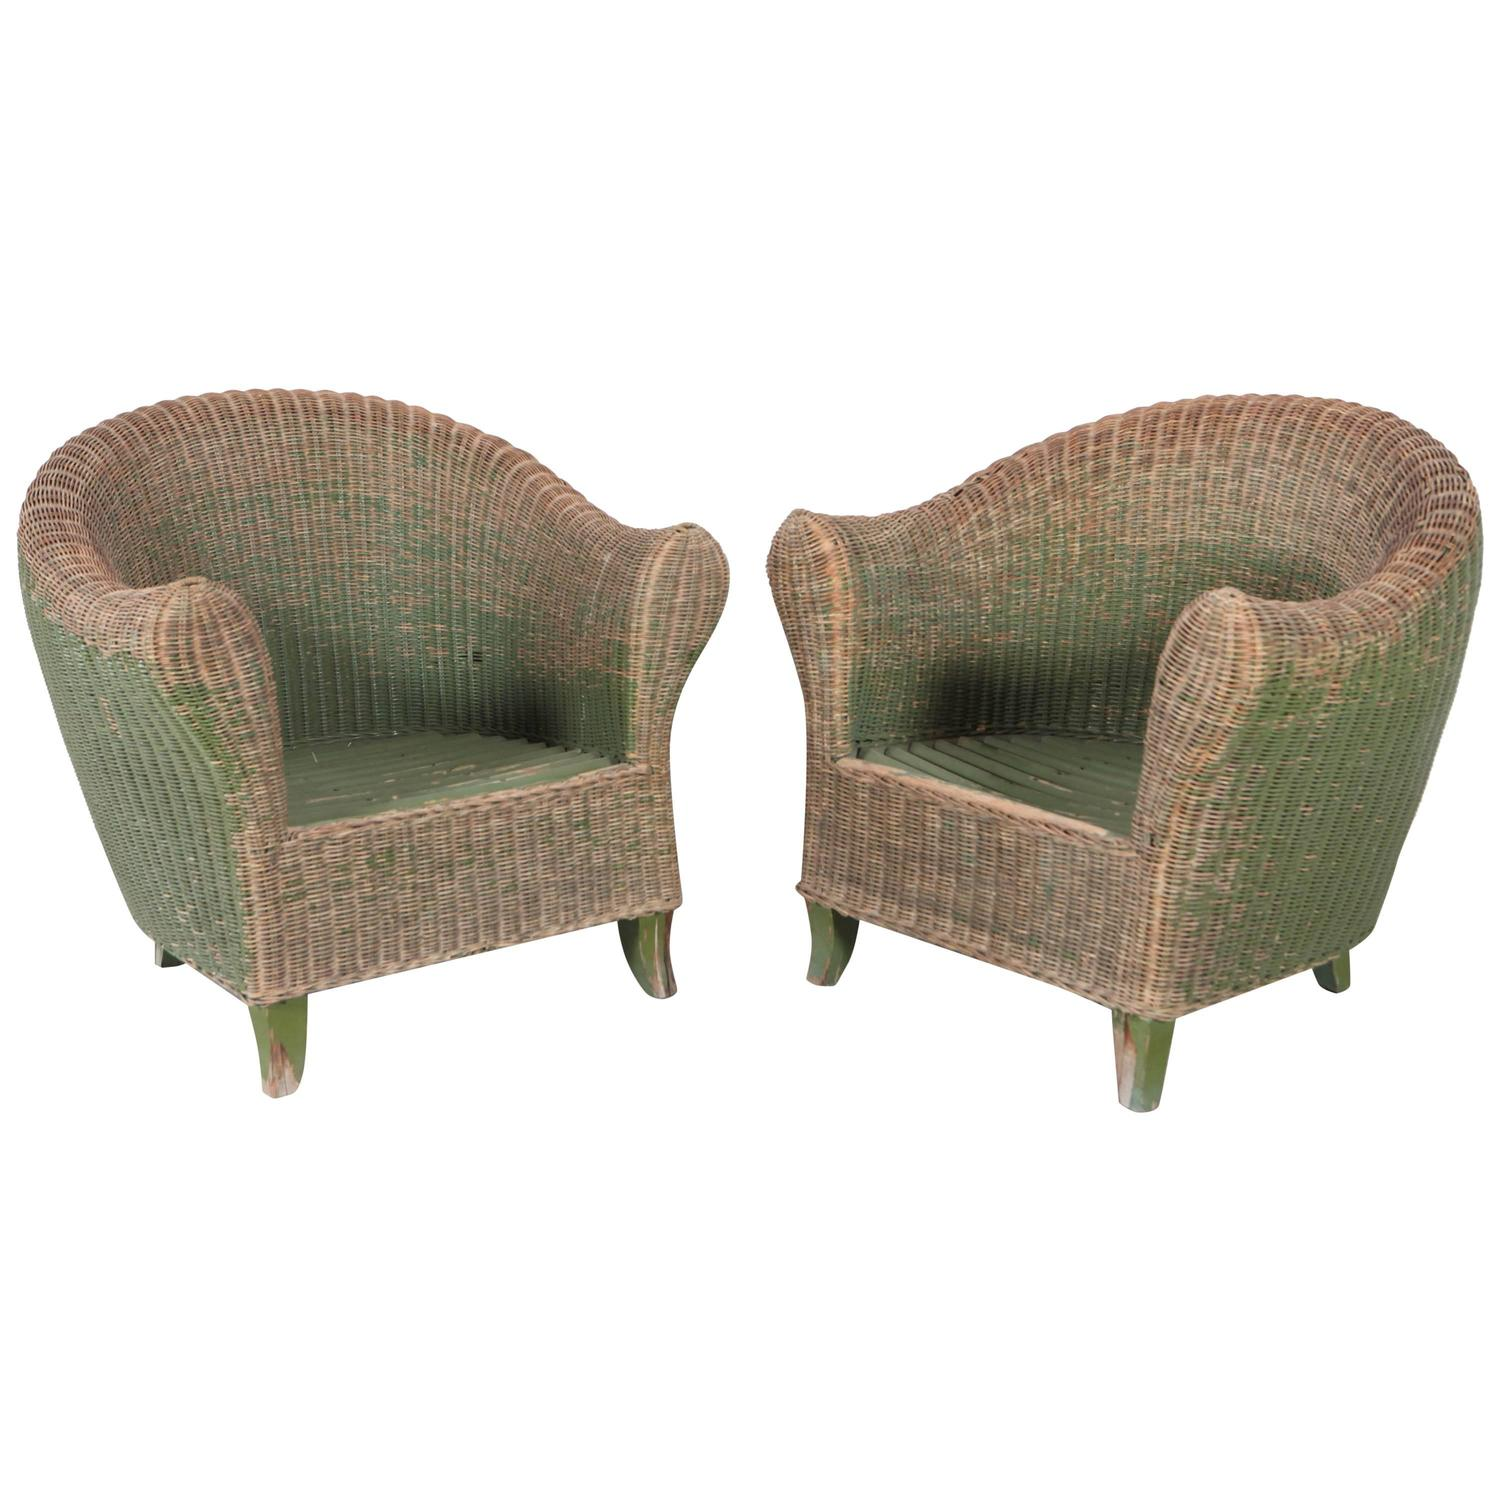 Pair of italian wicker green outdoor garden chairs at 1stdibs for Outdoor furniture italy